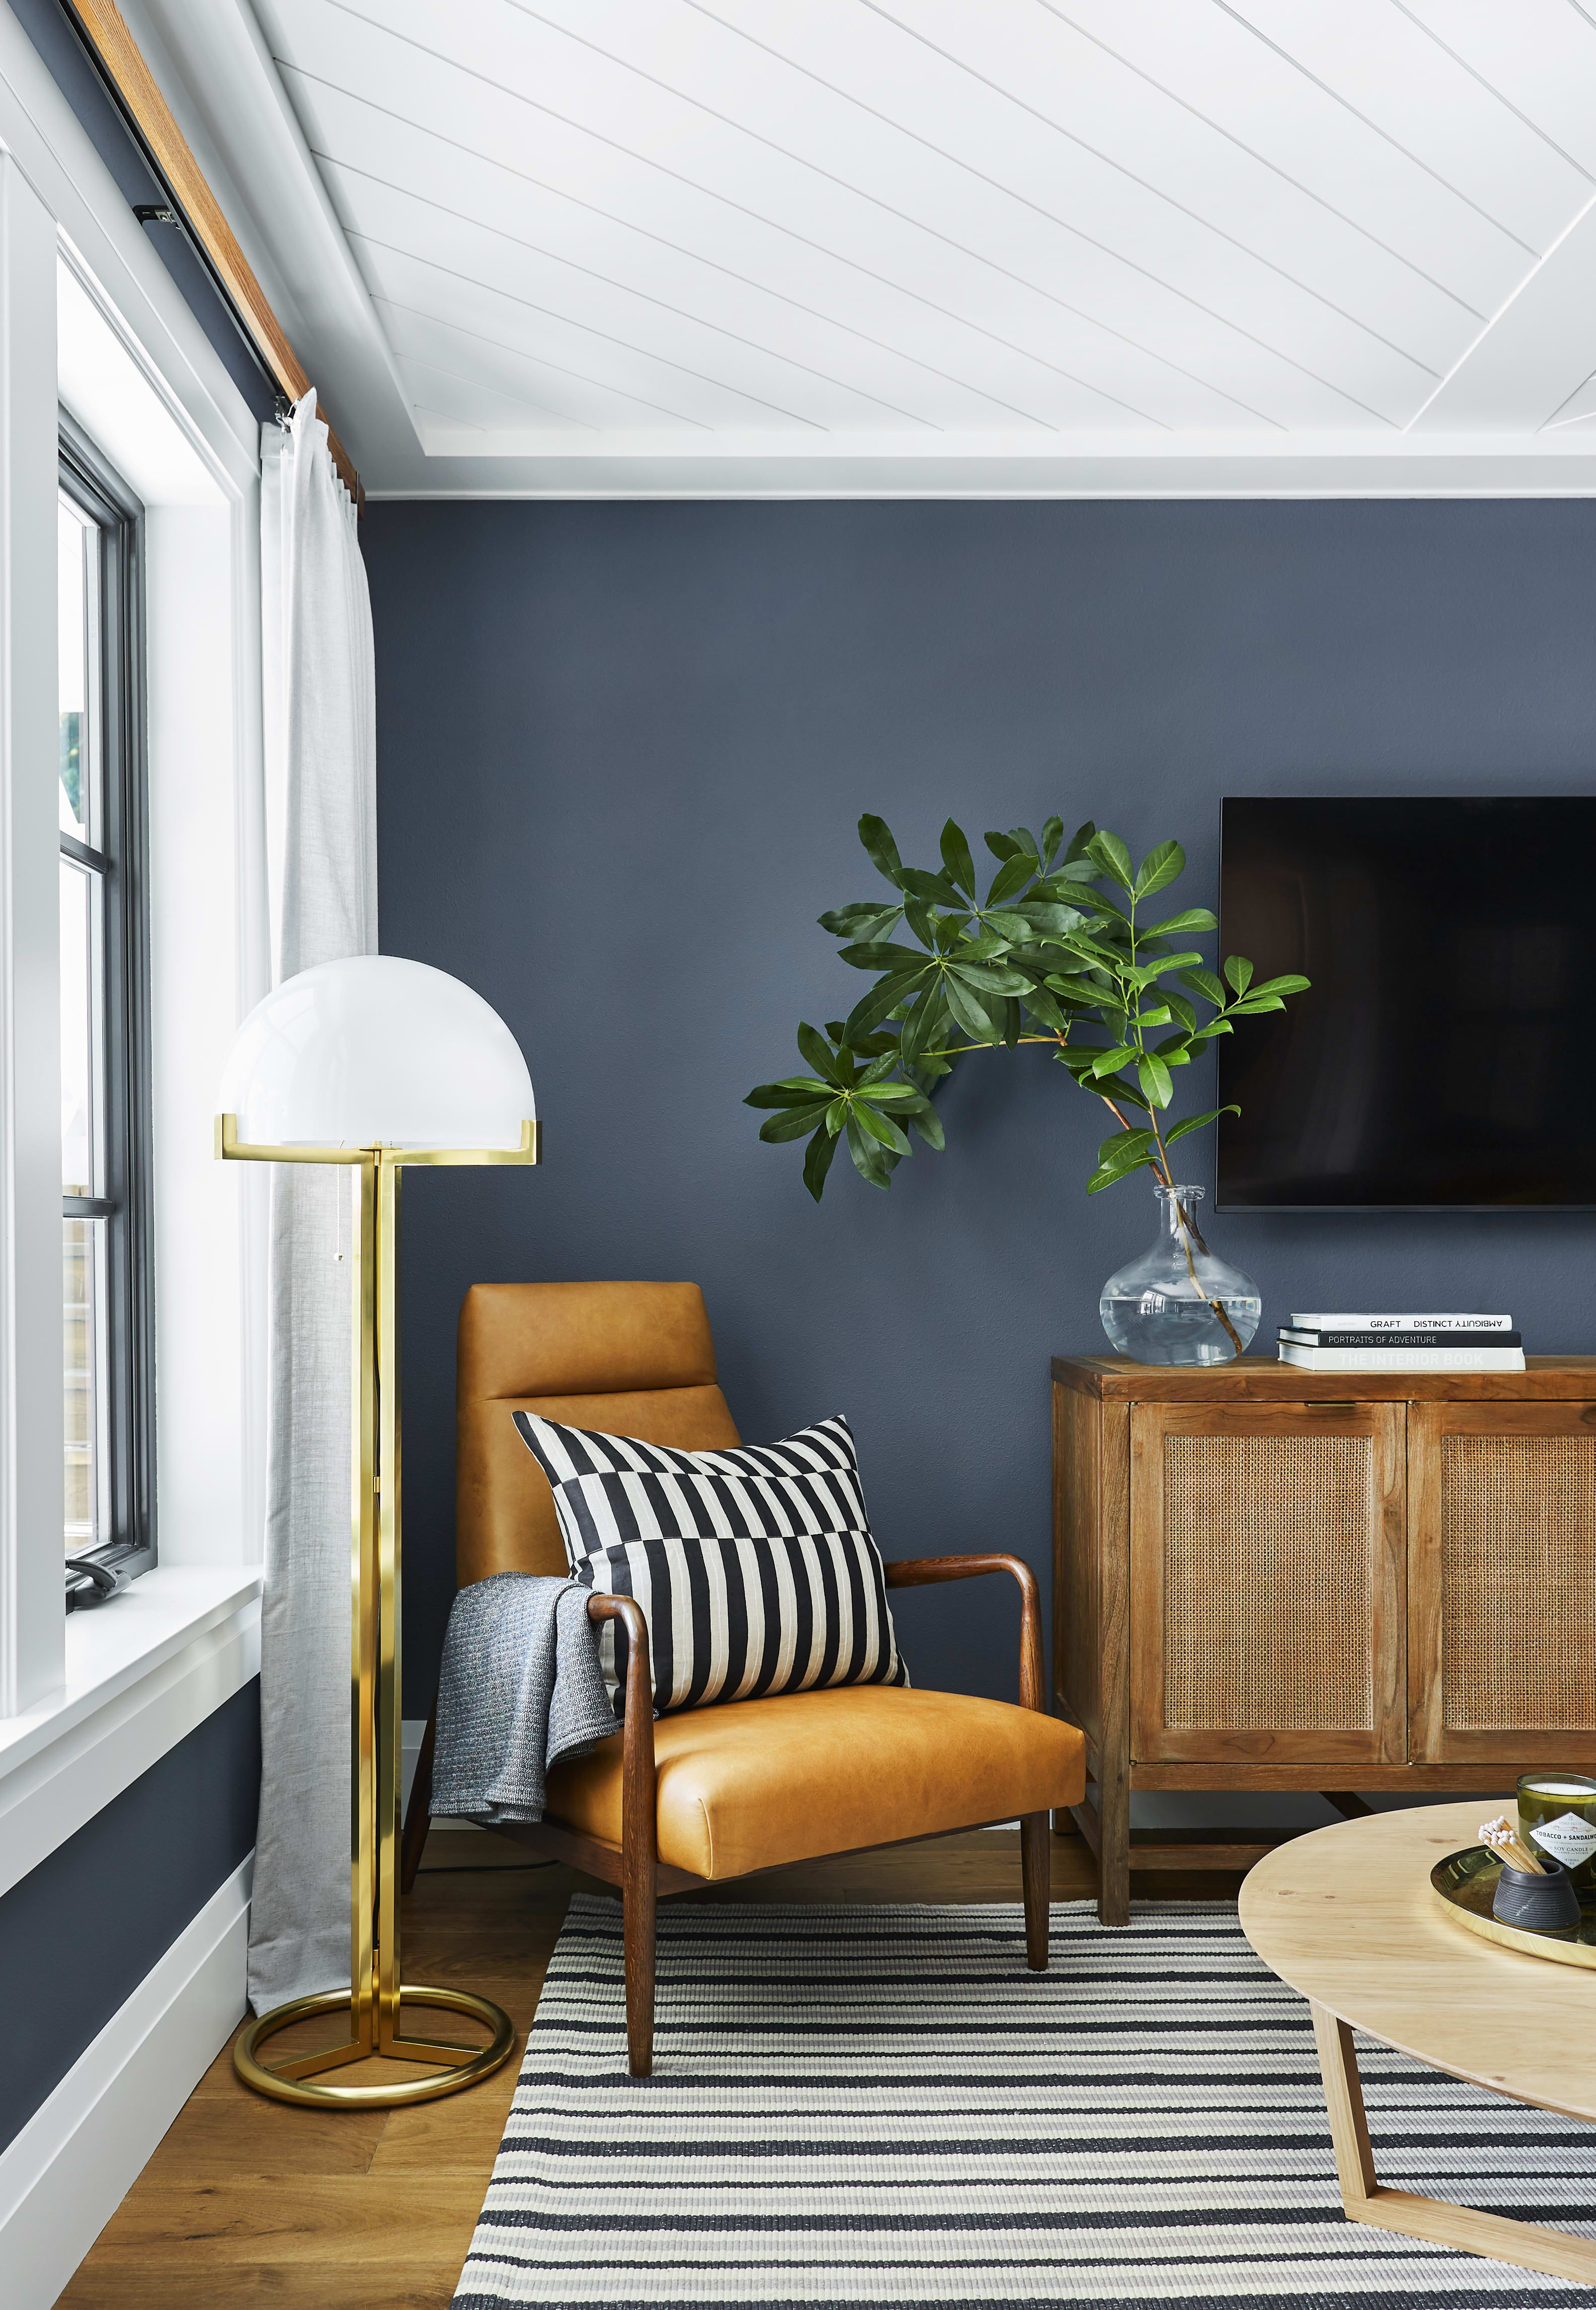 This Is The Most Relaxing Color To Paint Your Walls Home Decor Emily Henderson Design Decor #relaxing #living #room #colors